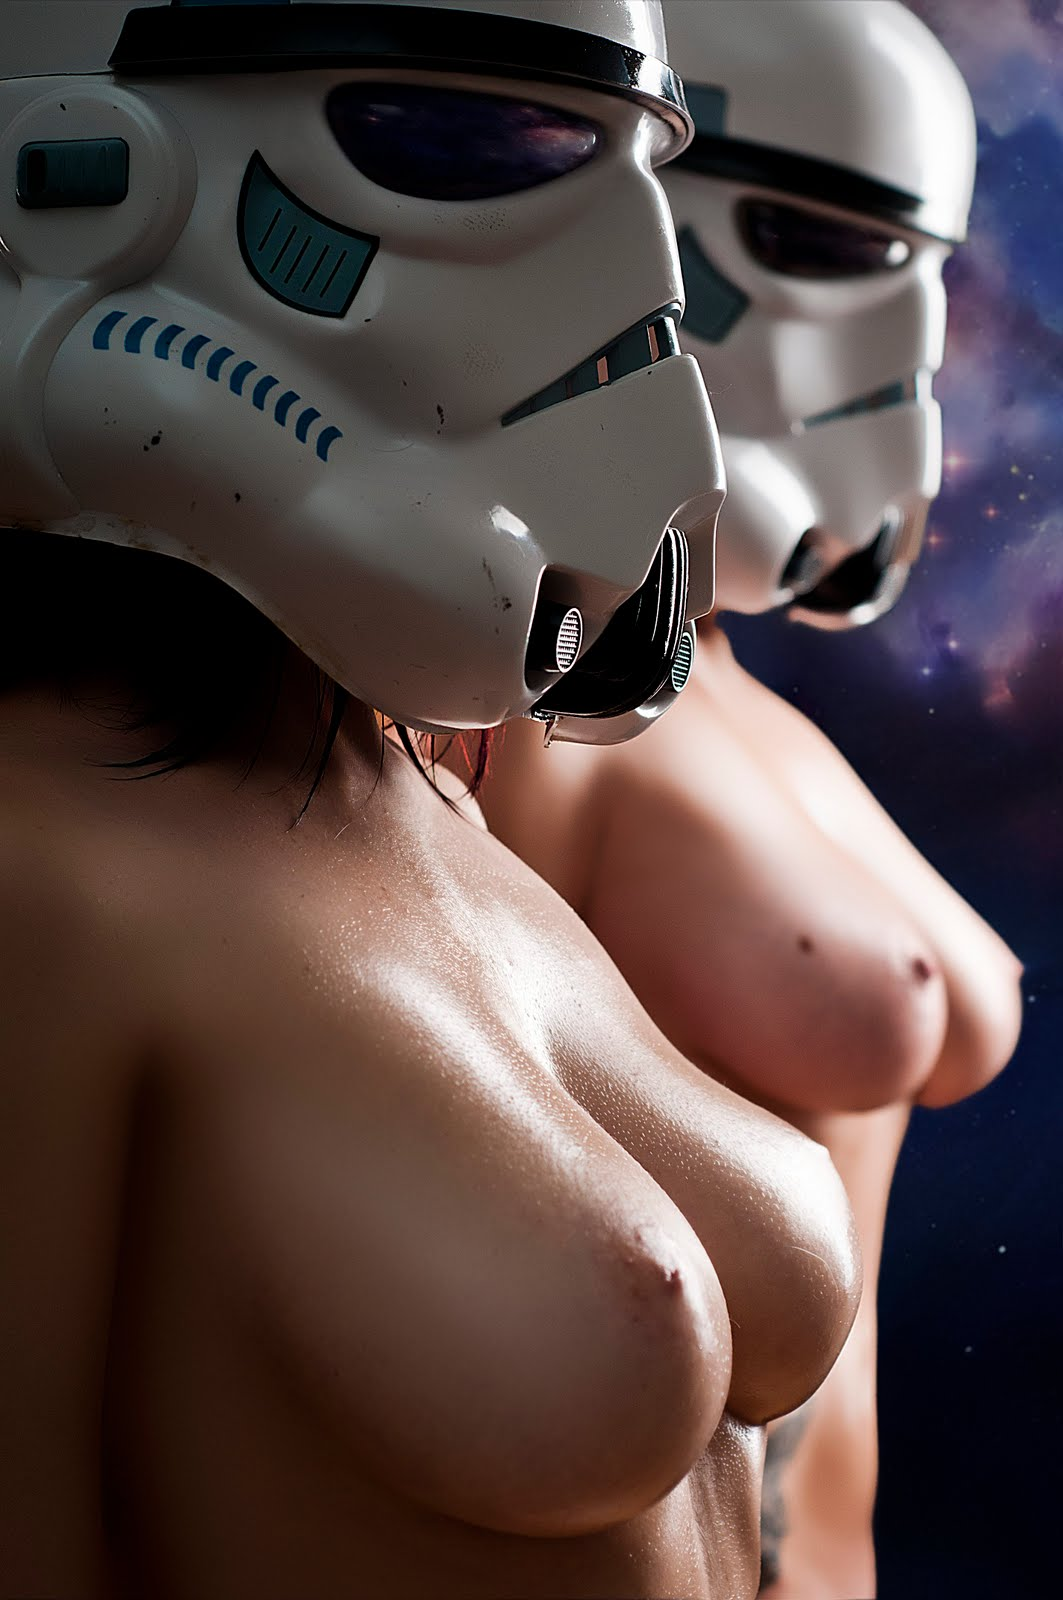 star wars females naked